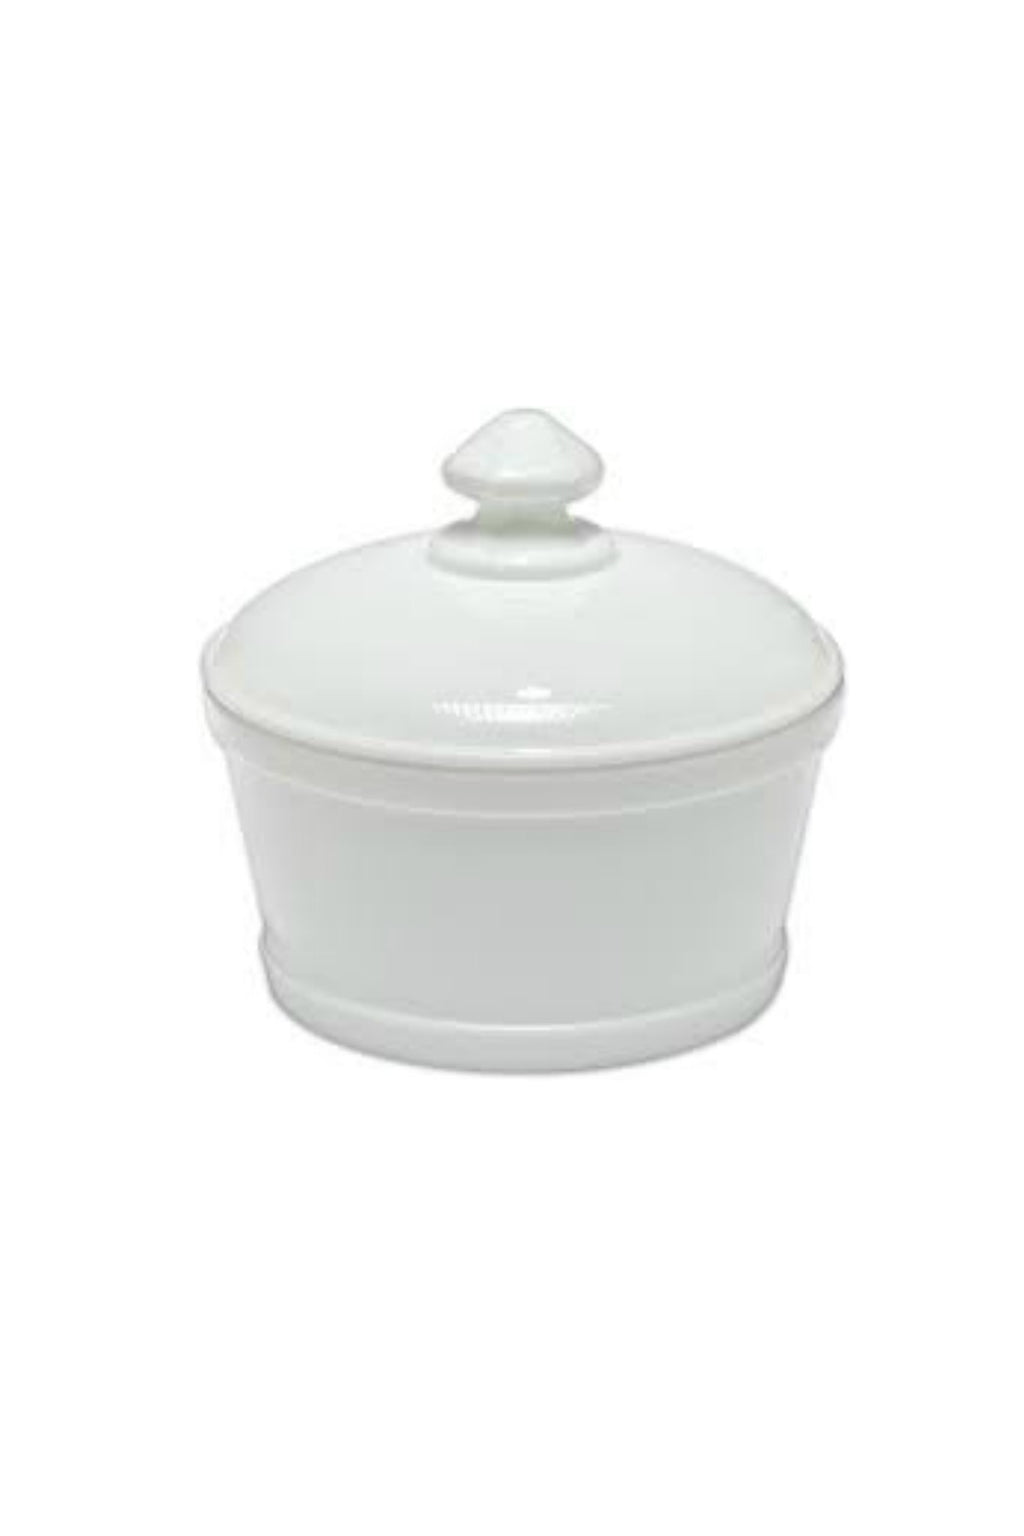 Mosser Glass Butter Tub in Milk